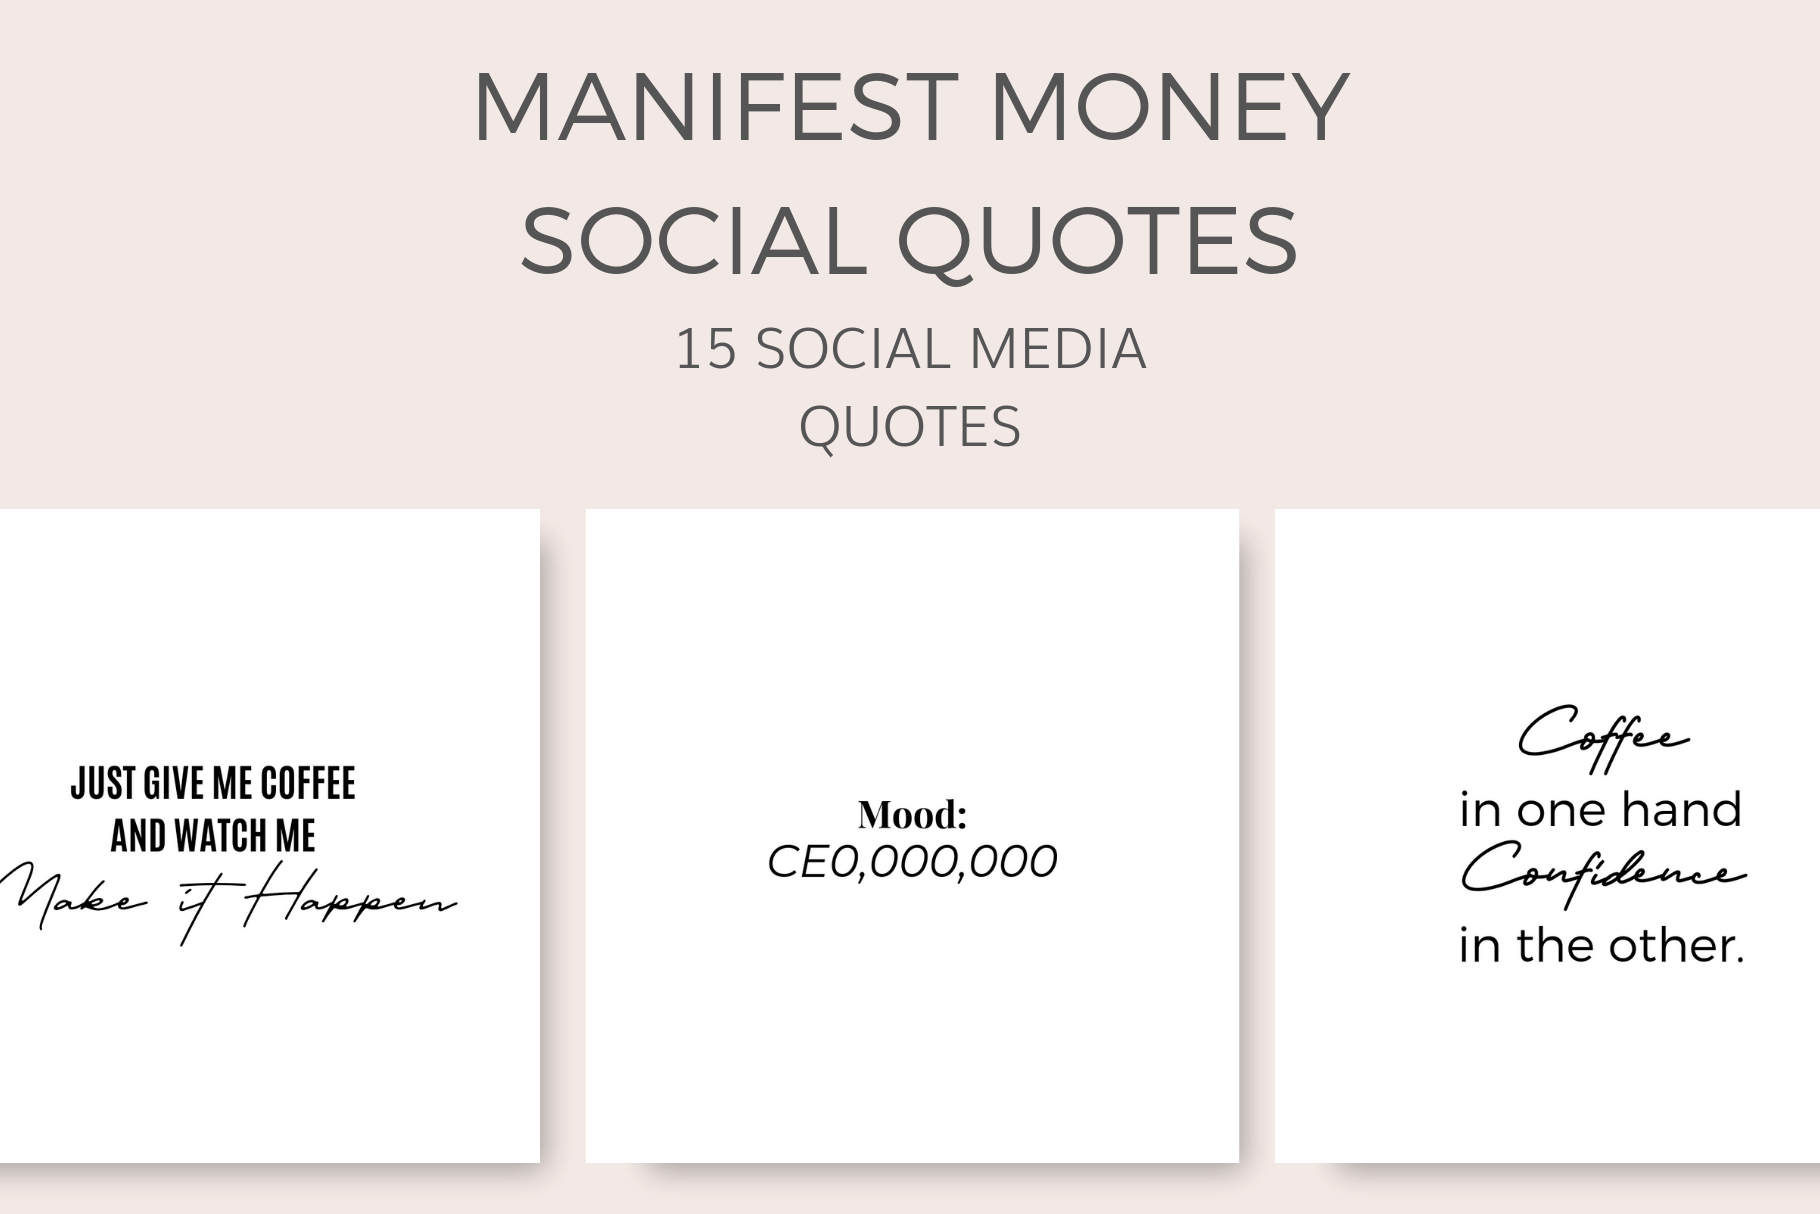 Manifest Money Social Quotes By Ivorymix Thehungryjpeg Com